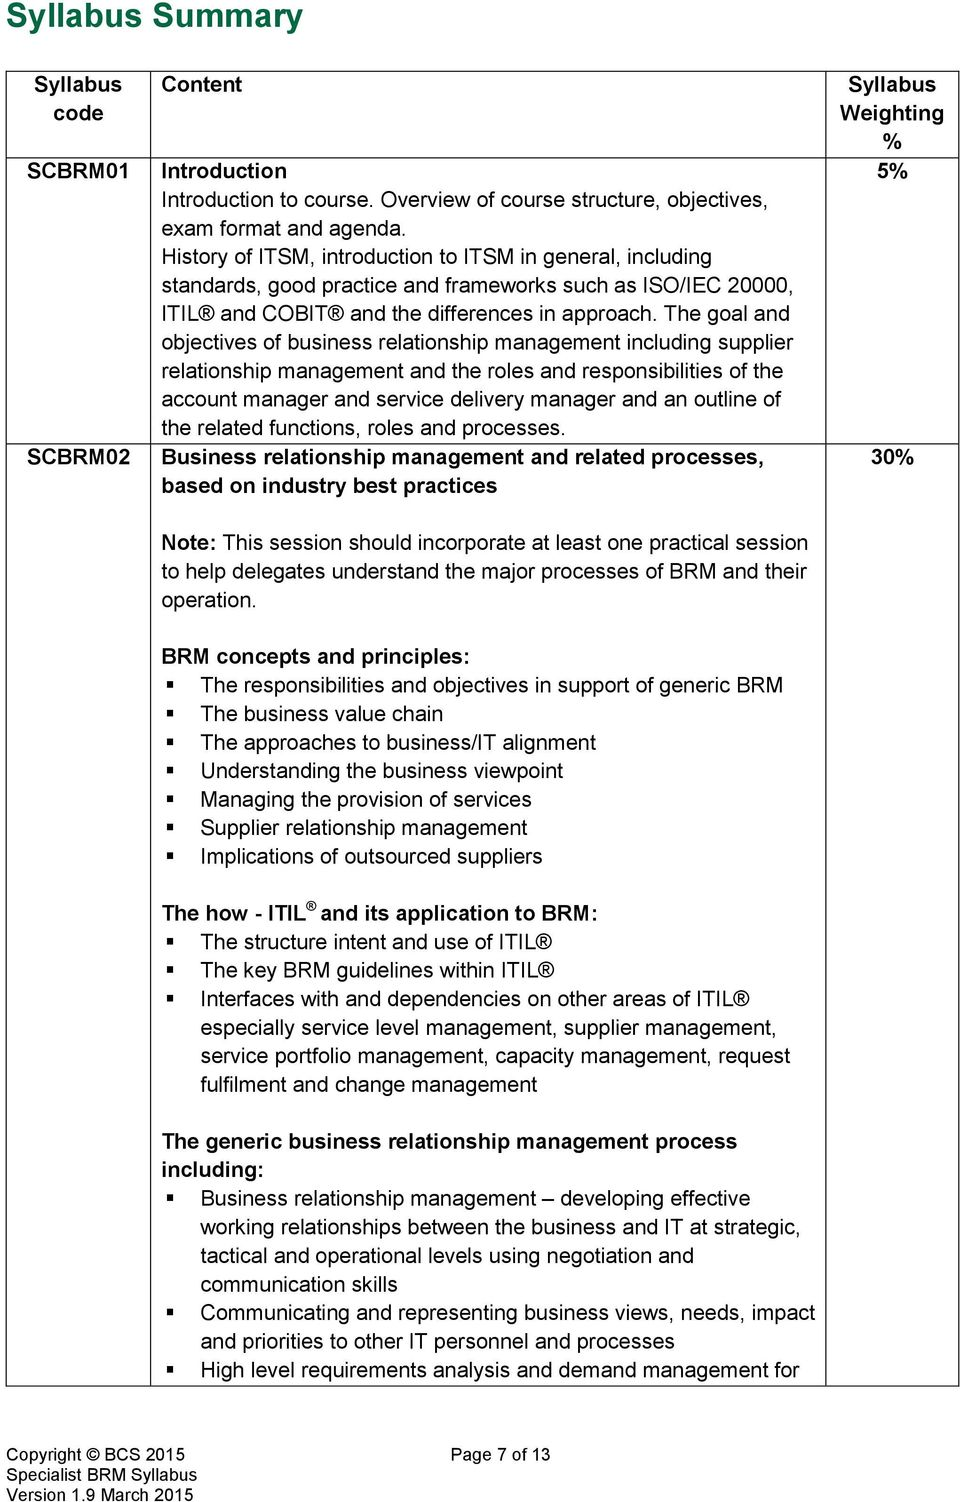 The goal and objectives of business relationship management including supplier relationship management and the roles and responsibilities of the account manager and service delivery manager and an